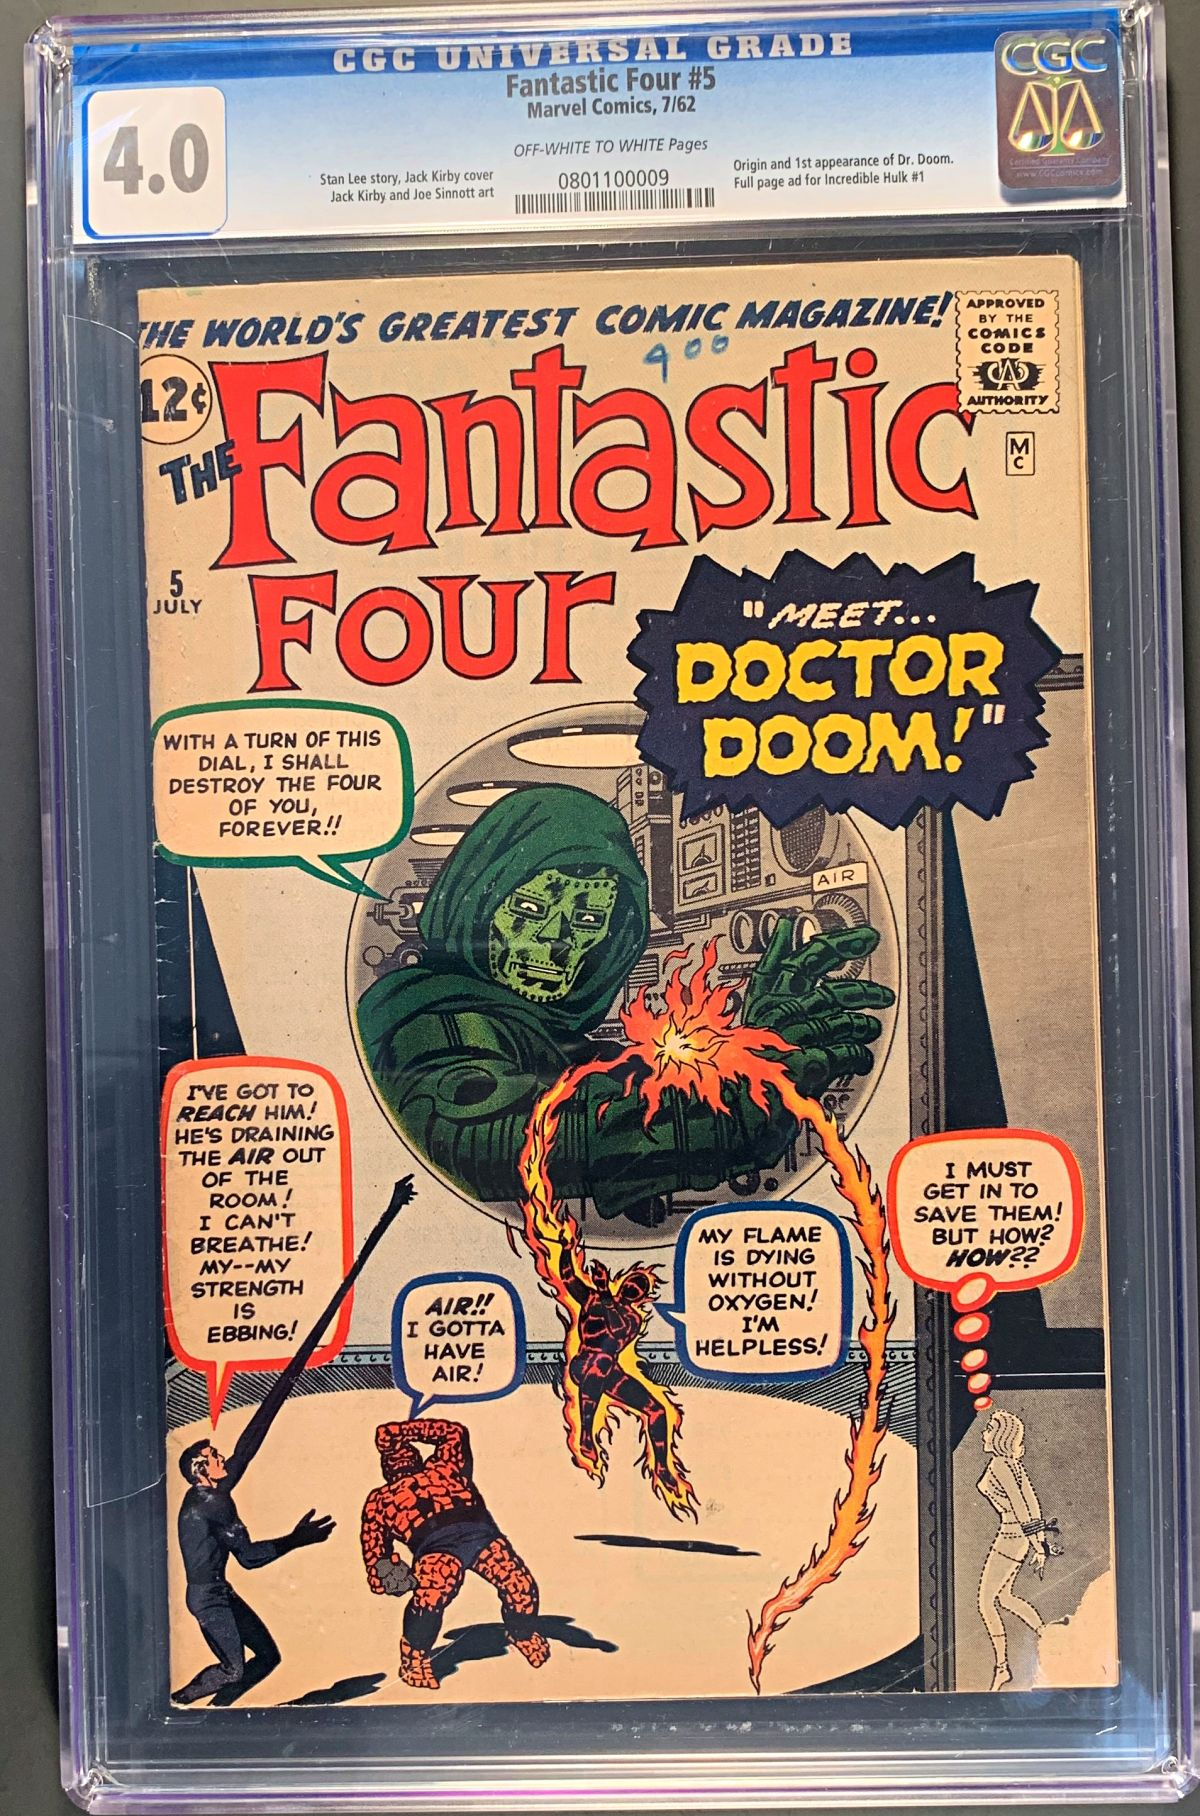 CLOSED] Fantastic Four #5 First Doctor Doom! CGC 4 0